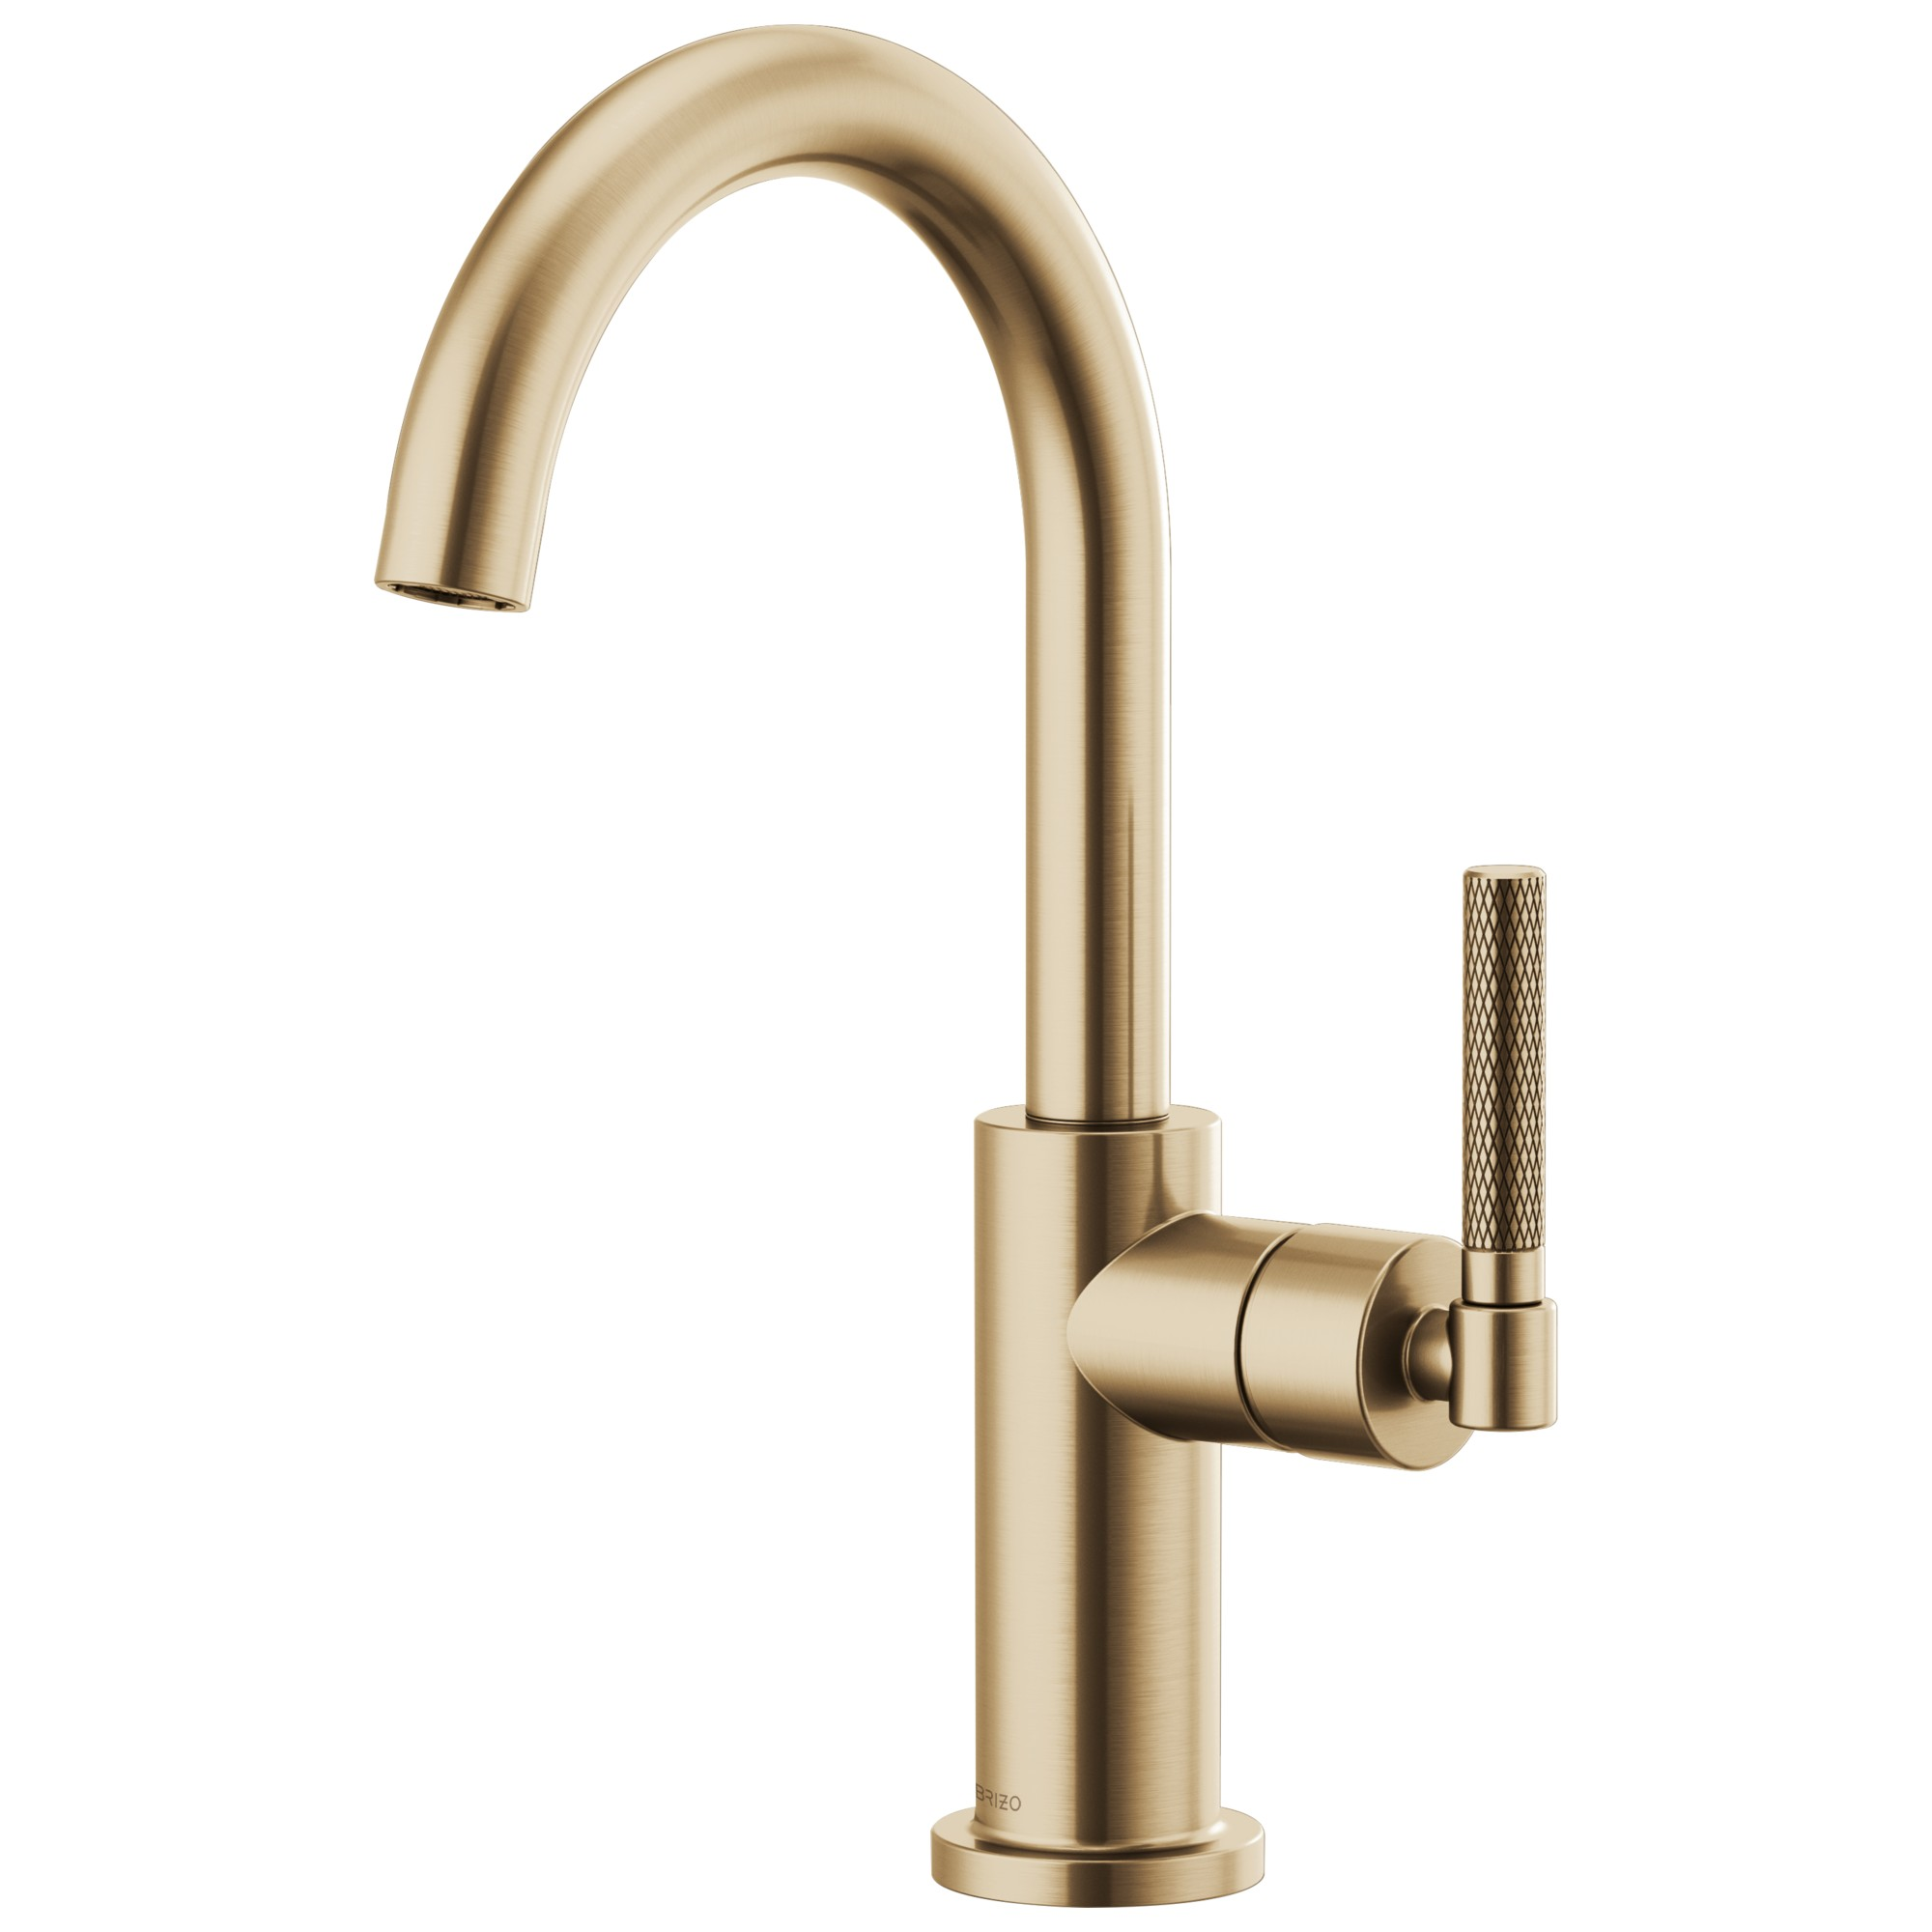 Brizo 61043LF-GL Litze Bar Faucet with Arc Spout and Knurled Handle - Luxe Gold